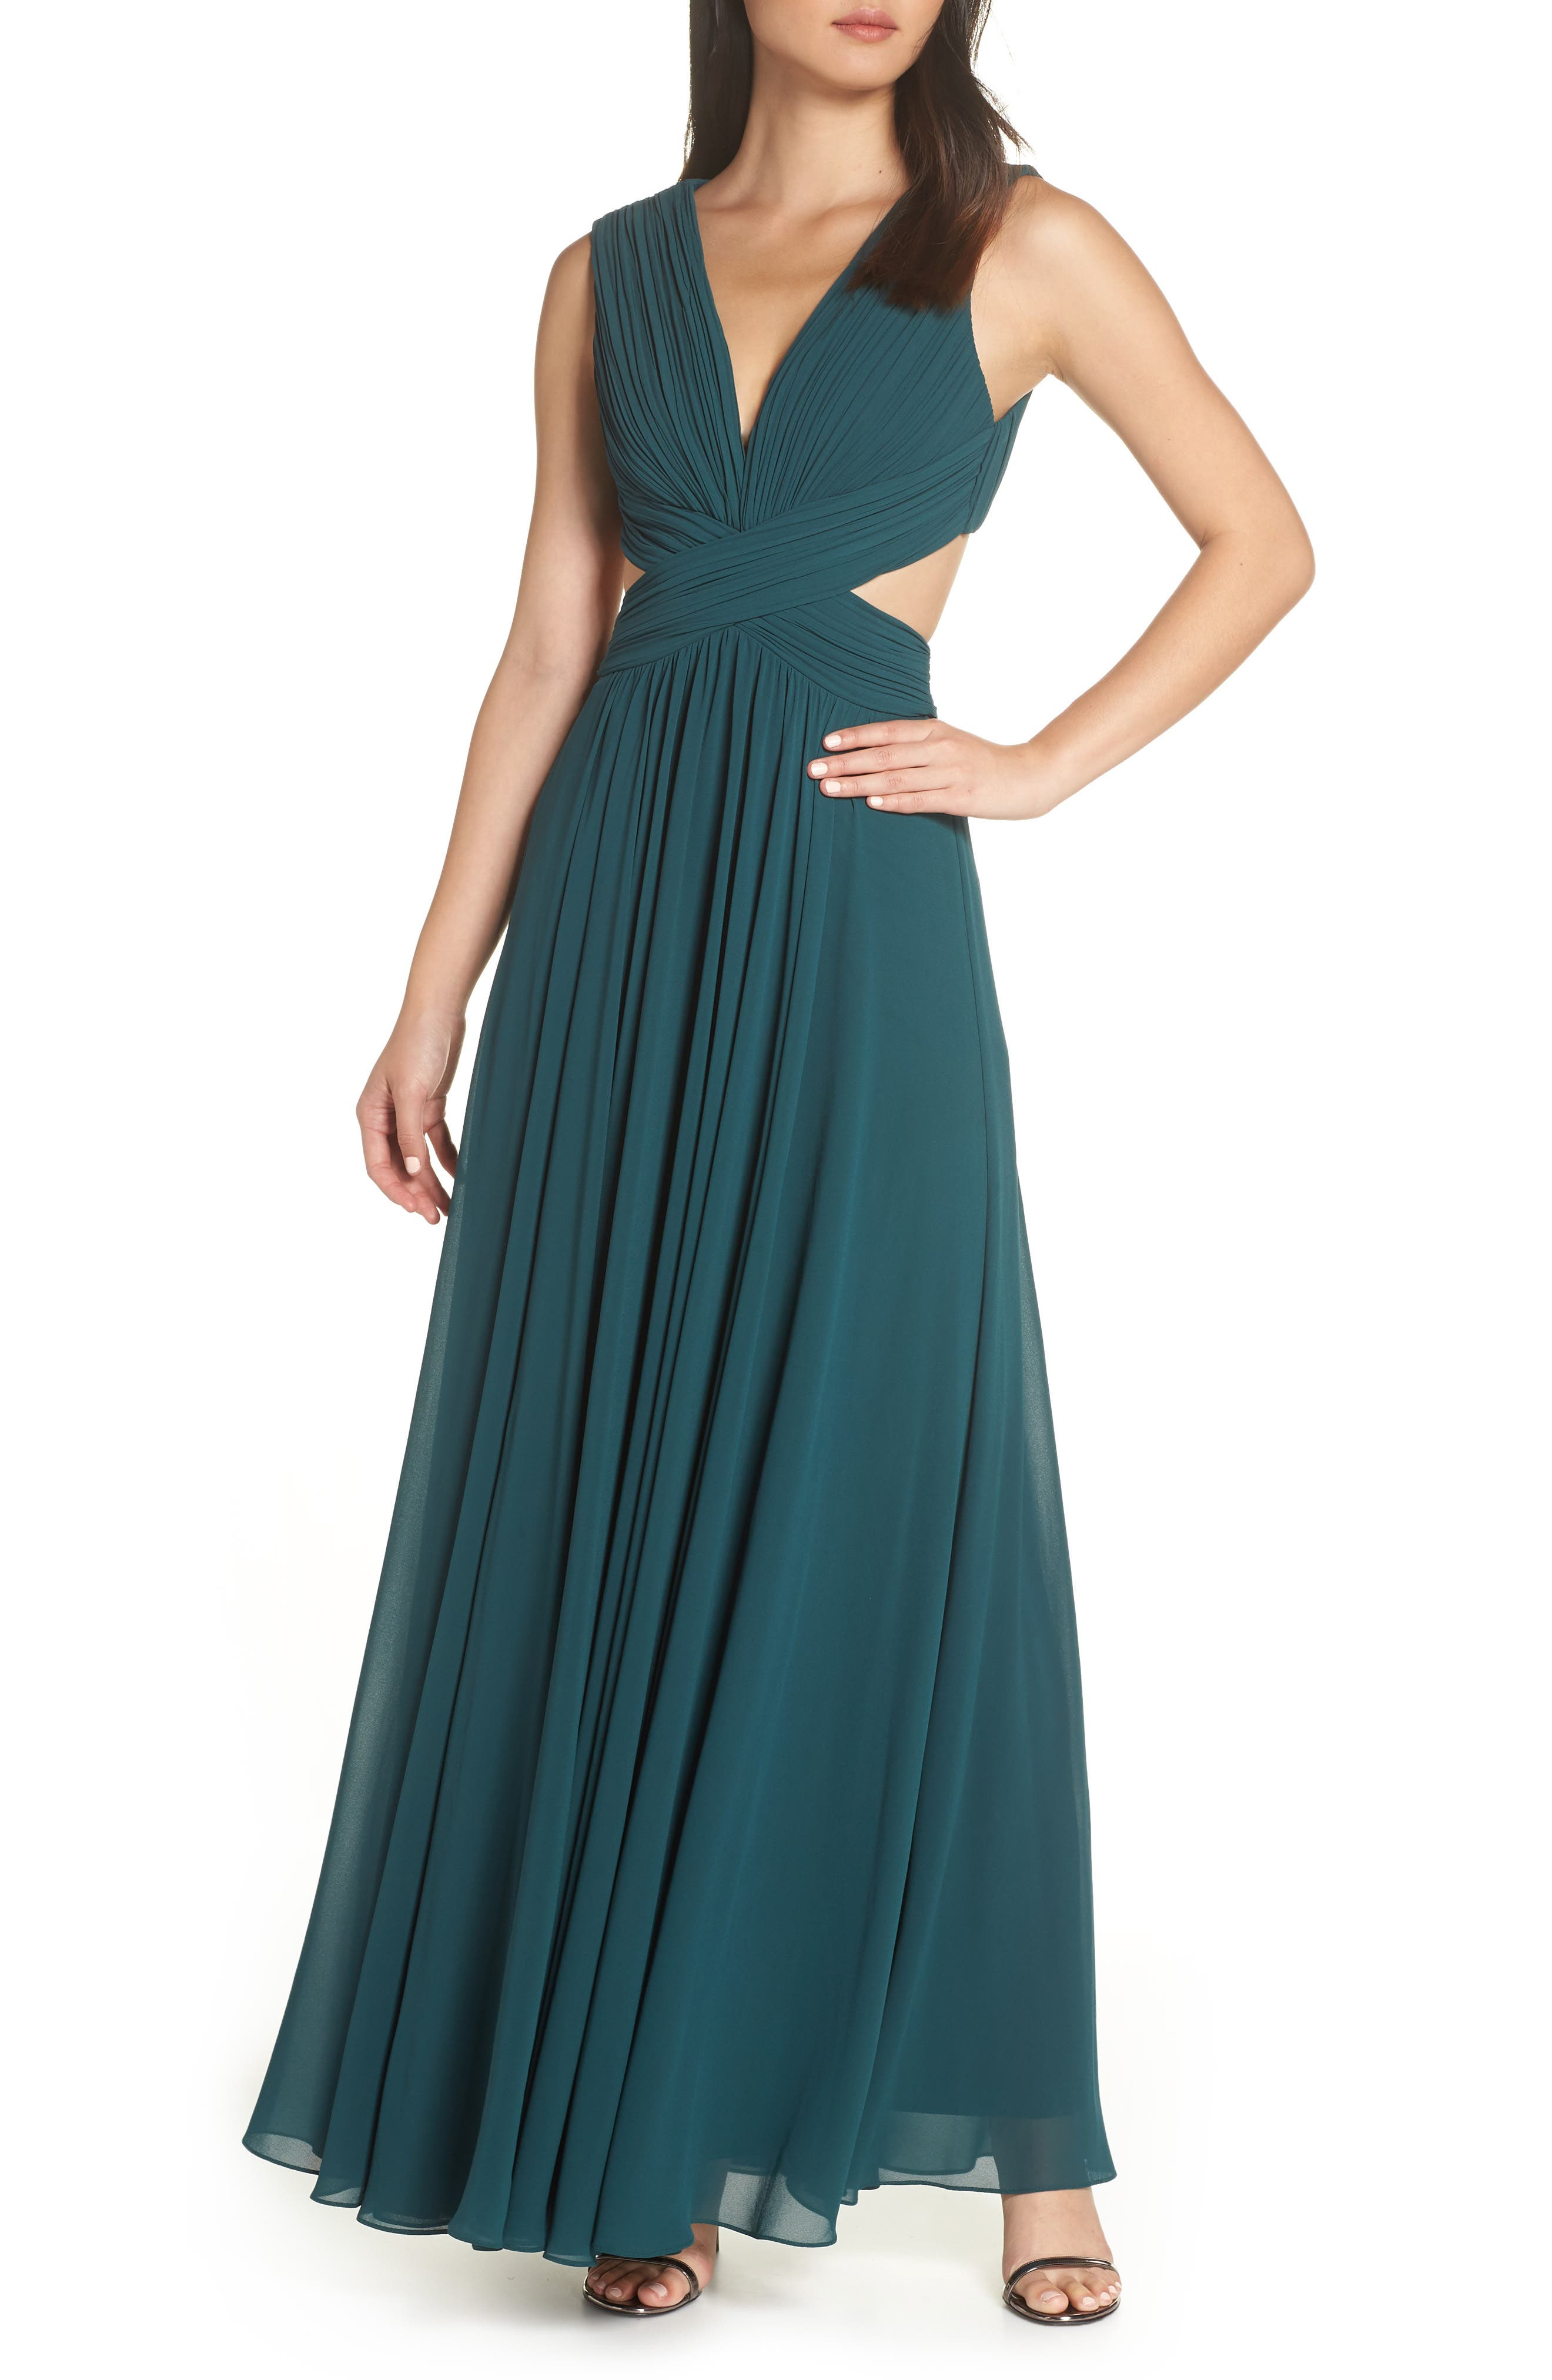 LULUS, Vivid Imagination Chiffon Gown, Main thumbnail 1, color, FOREST GREEN